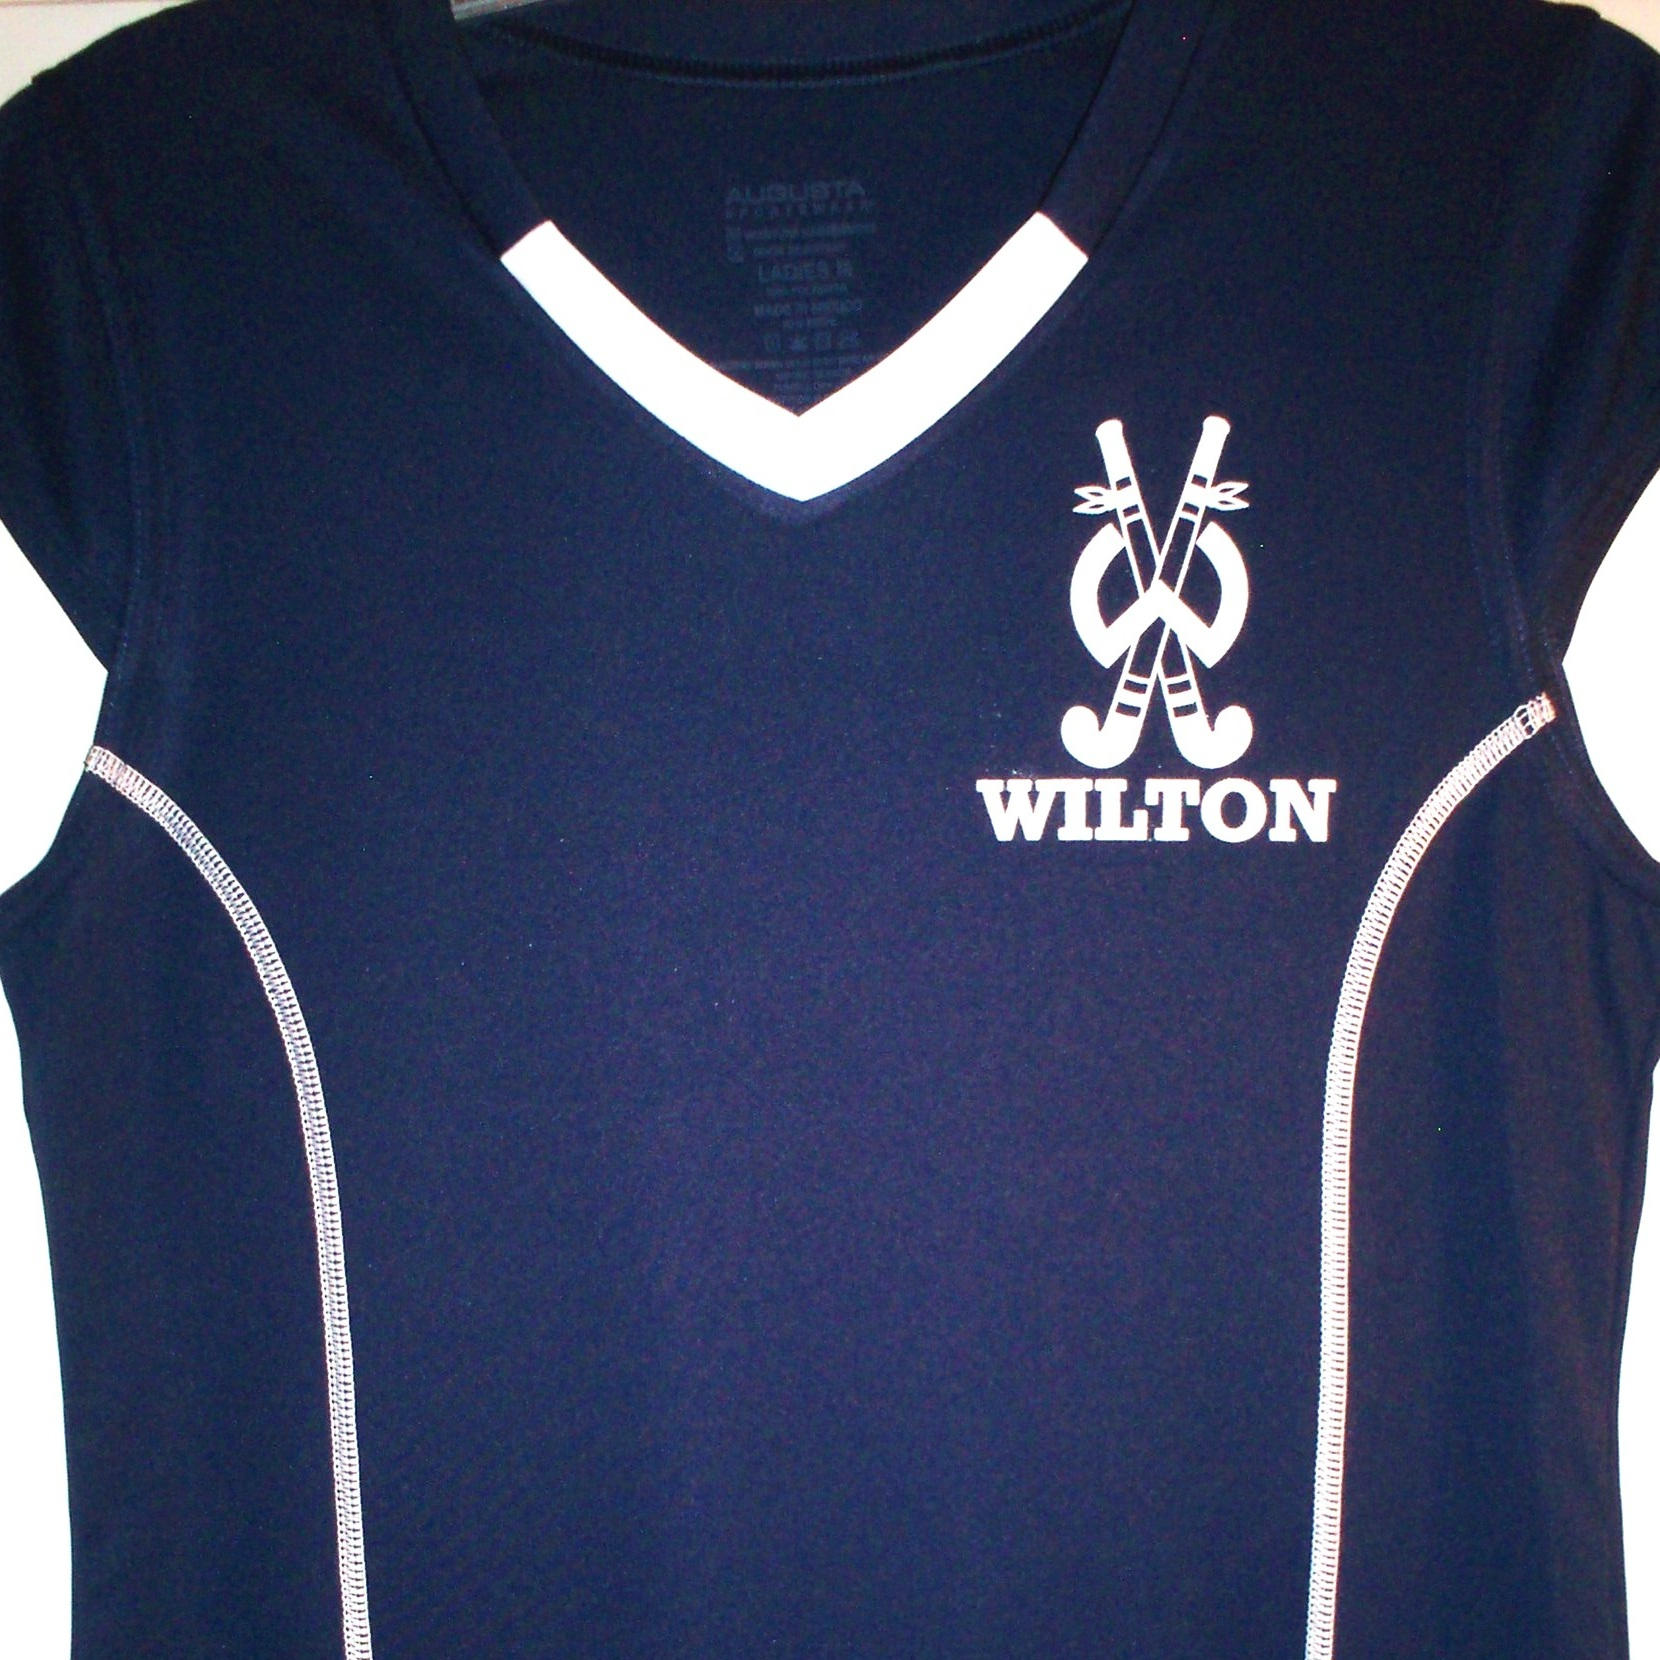 Wilton Youth Field Hockey Jersey. Available in Girls and Ladies sizes. Each jersey comes with the player's name and number printed on the back!